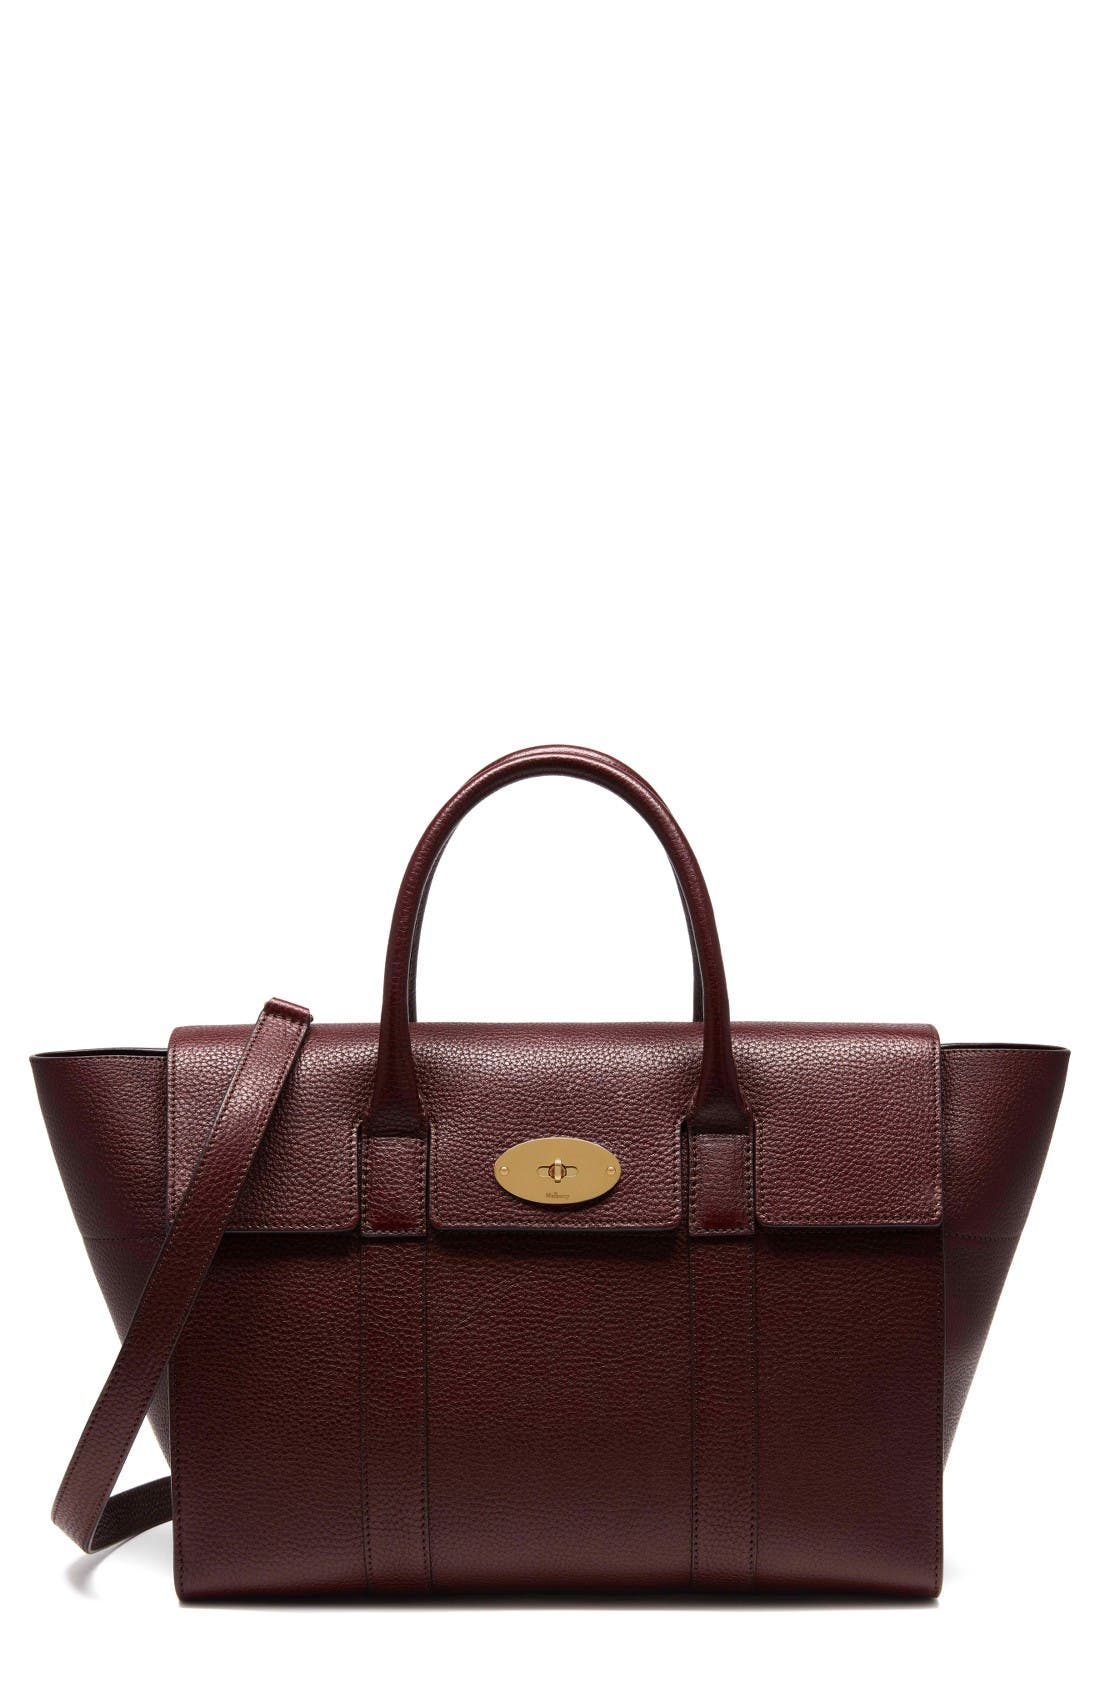 Bayswater Calfskin Leather Satchel,                             Main thumbnail 1, color,                             Oxblood